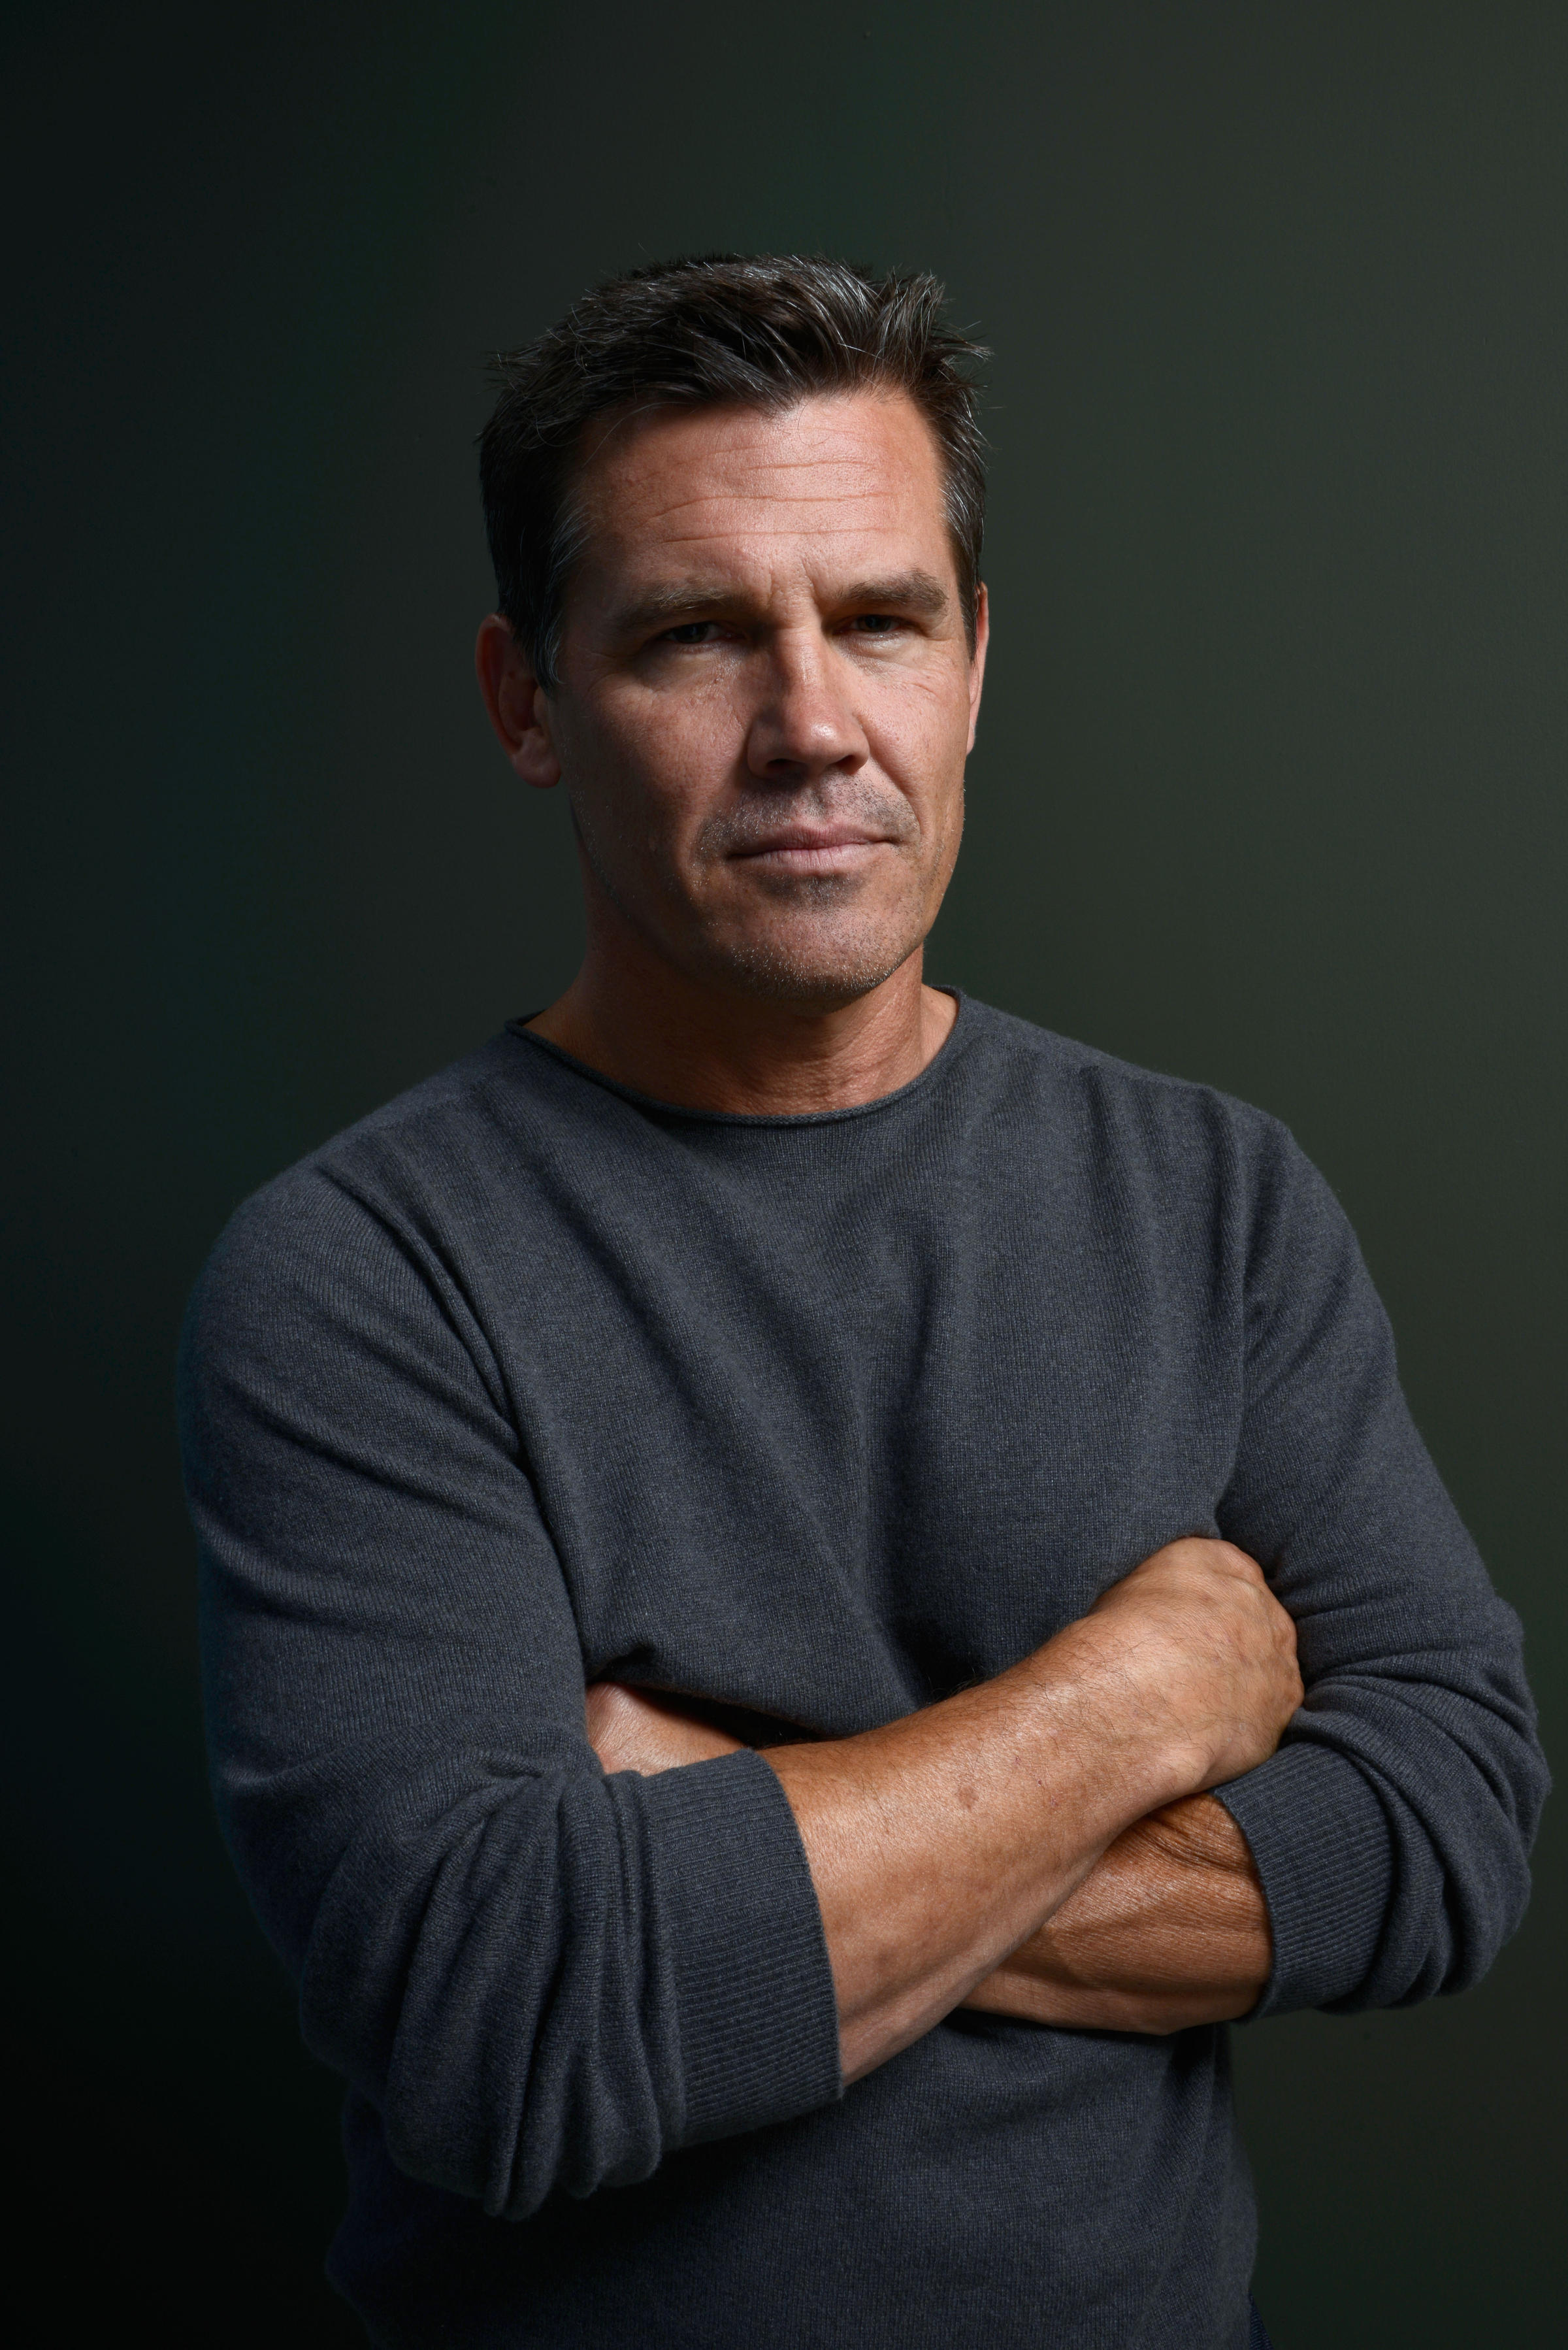 josh brolin height and weight